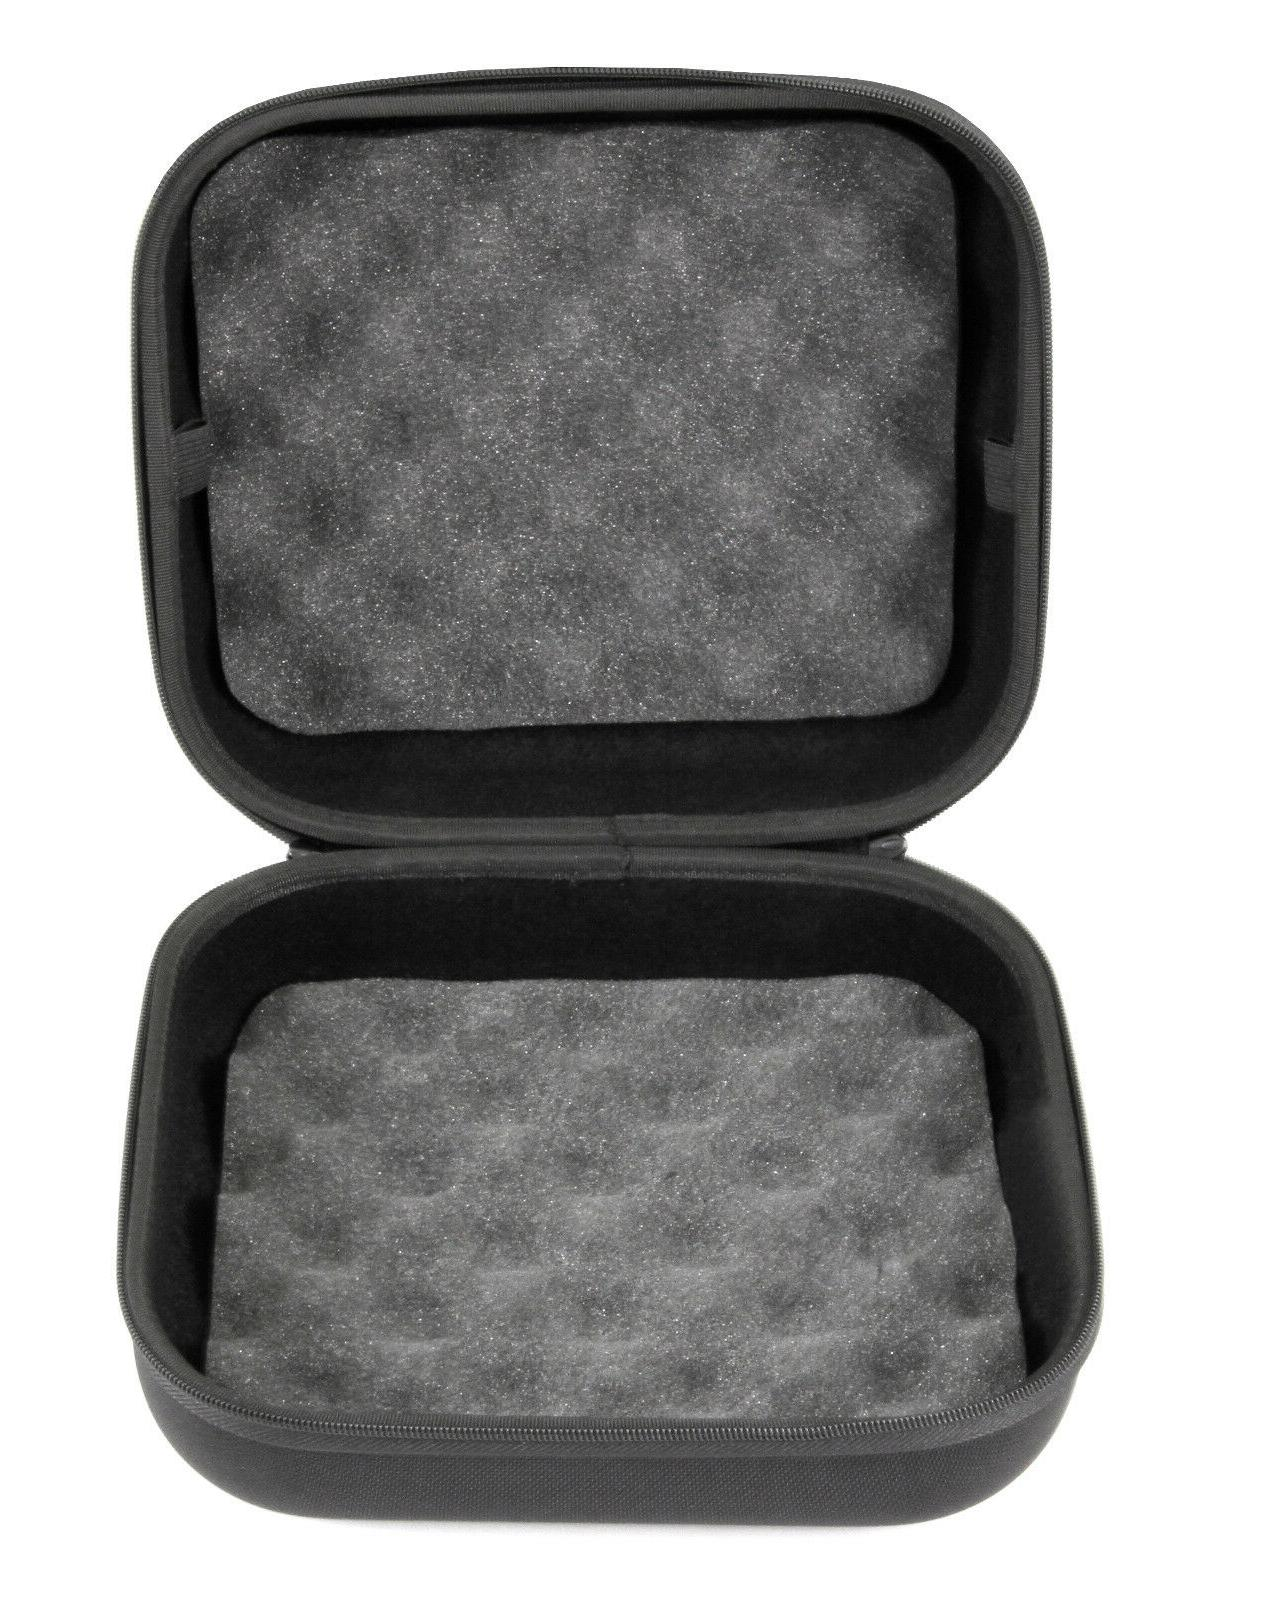 Portable Projector Case Fits Meyoung Projector and Small Acc